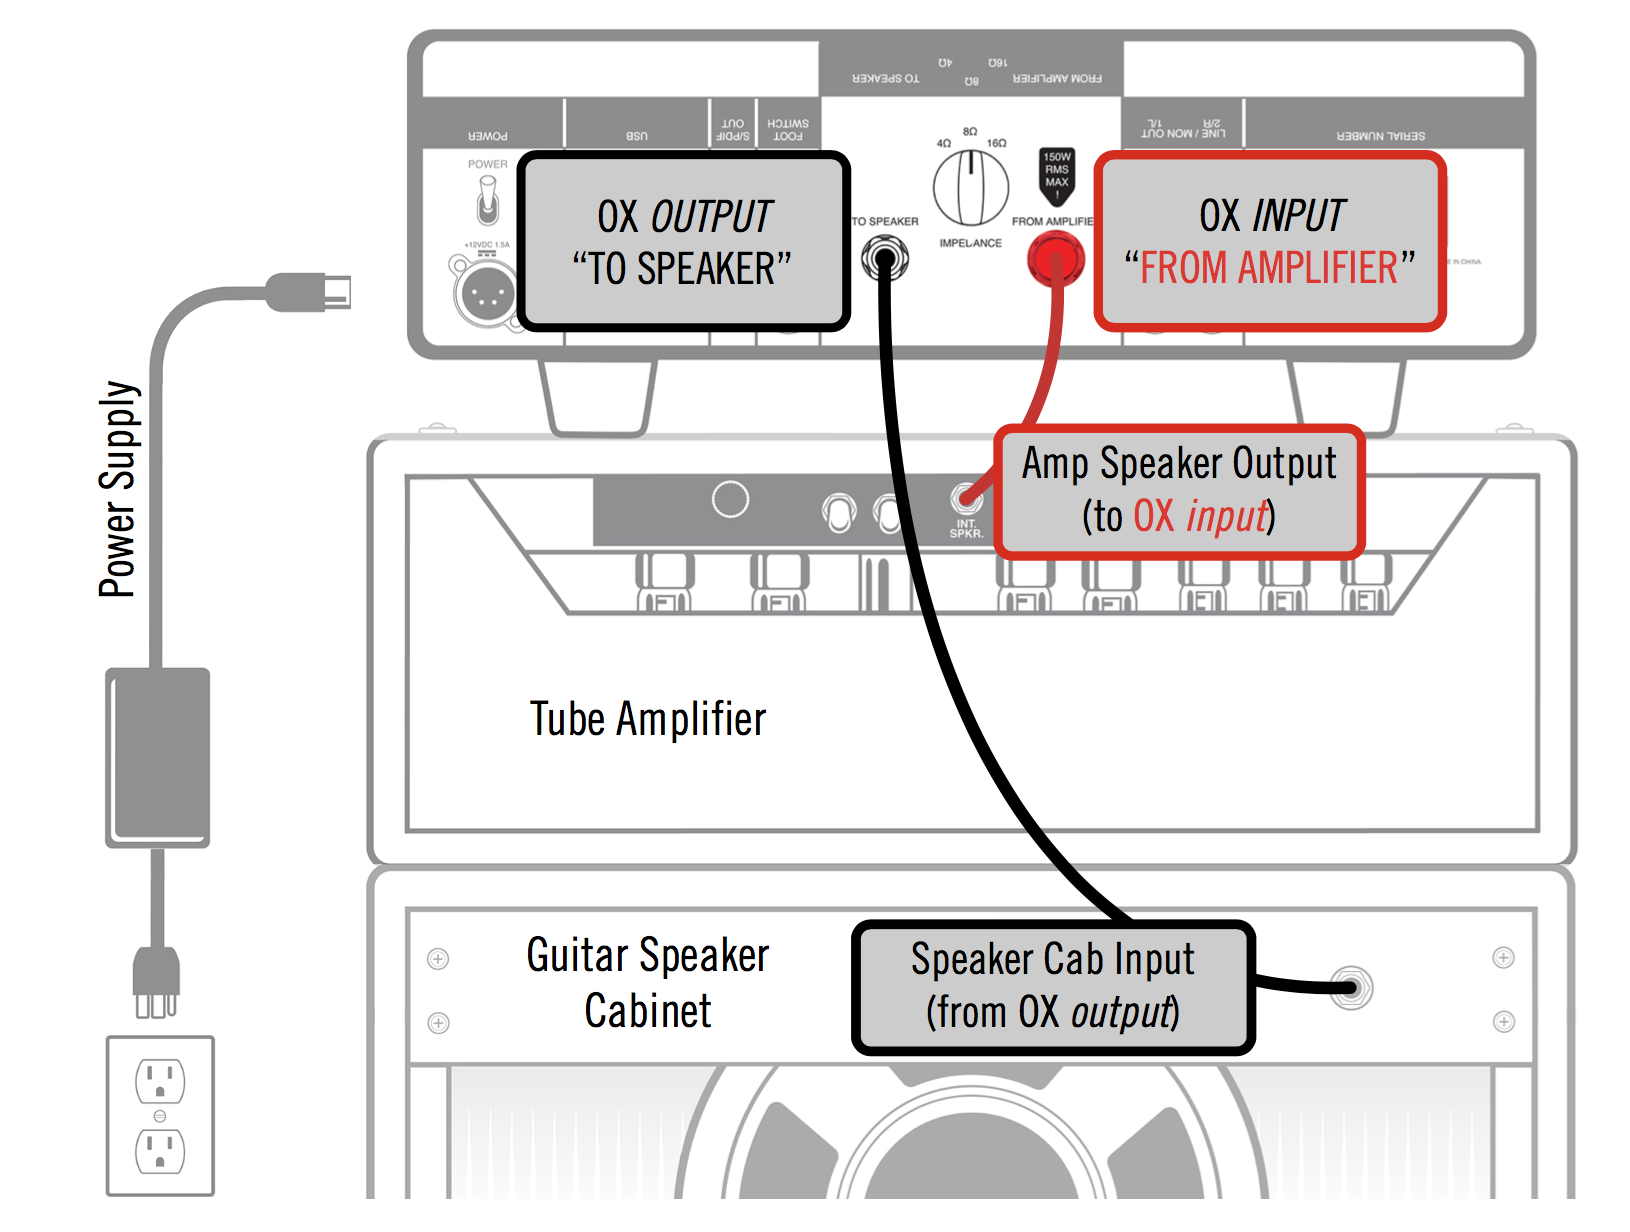 Audio Xlr Wiring Multiple Speakers Diagram Libraries Third Levelox Amp U0026 Speaker Connection Universal